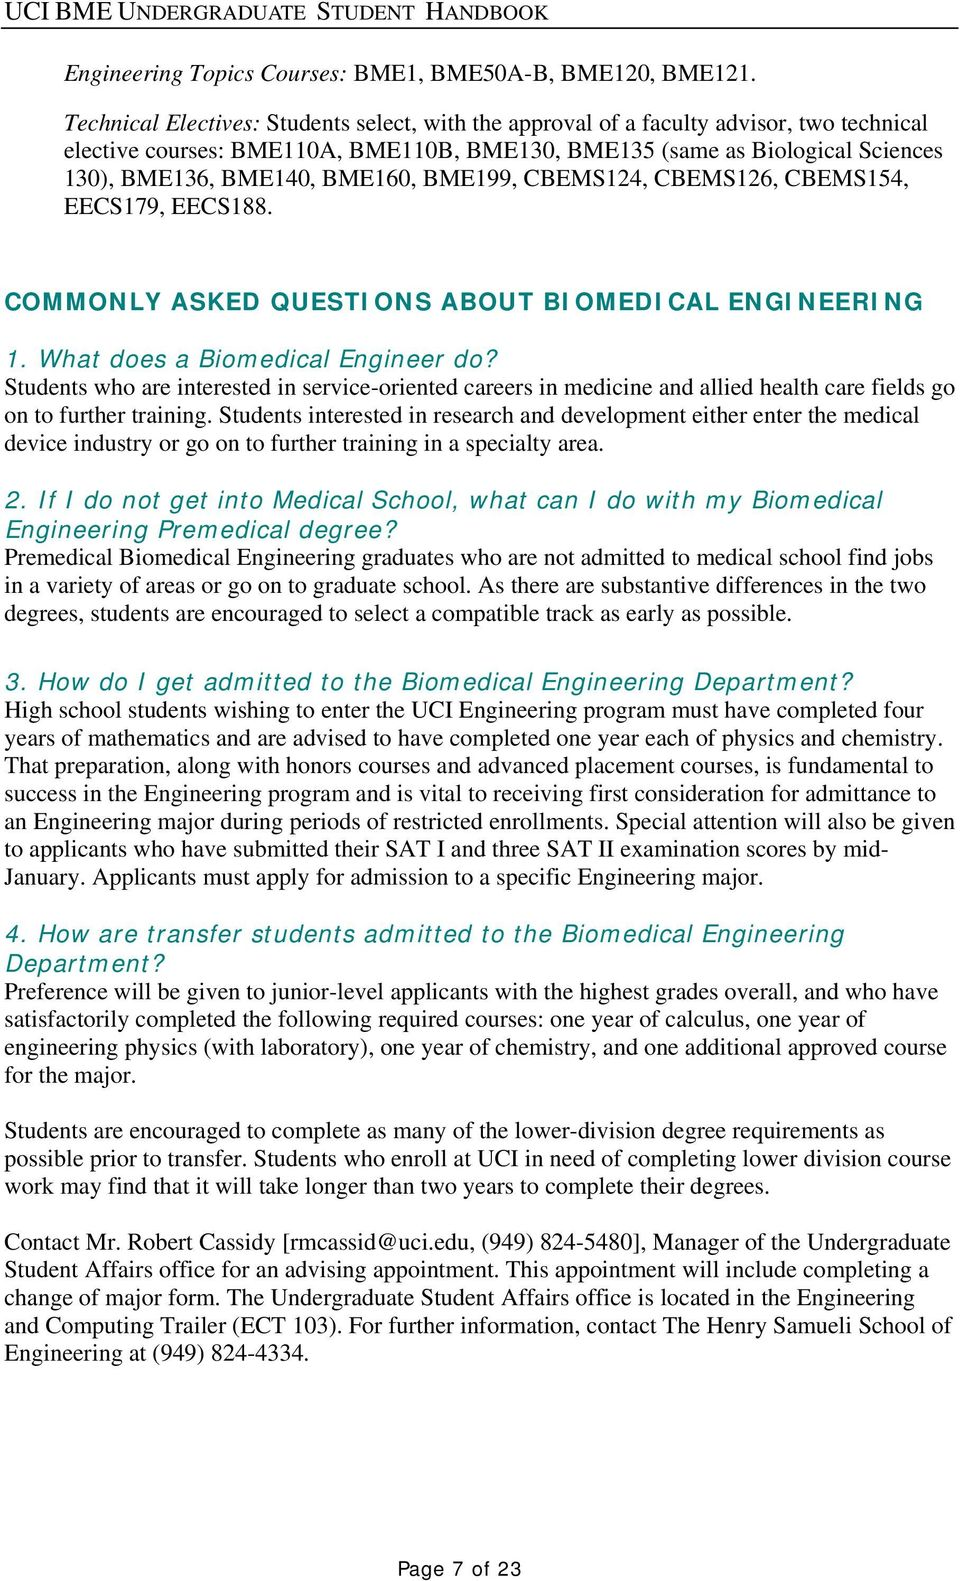 BME160, BME199, CBEMS124, CBEMS126, CBEMS154, EECS179, EECS188. COMMONLY ASKED QUESTIONS ABOUT BIOMEDICAL ENGINEERING 1. What does a Biomedical Engineer do?